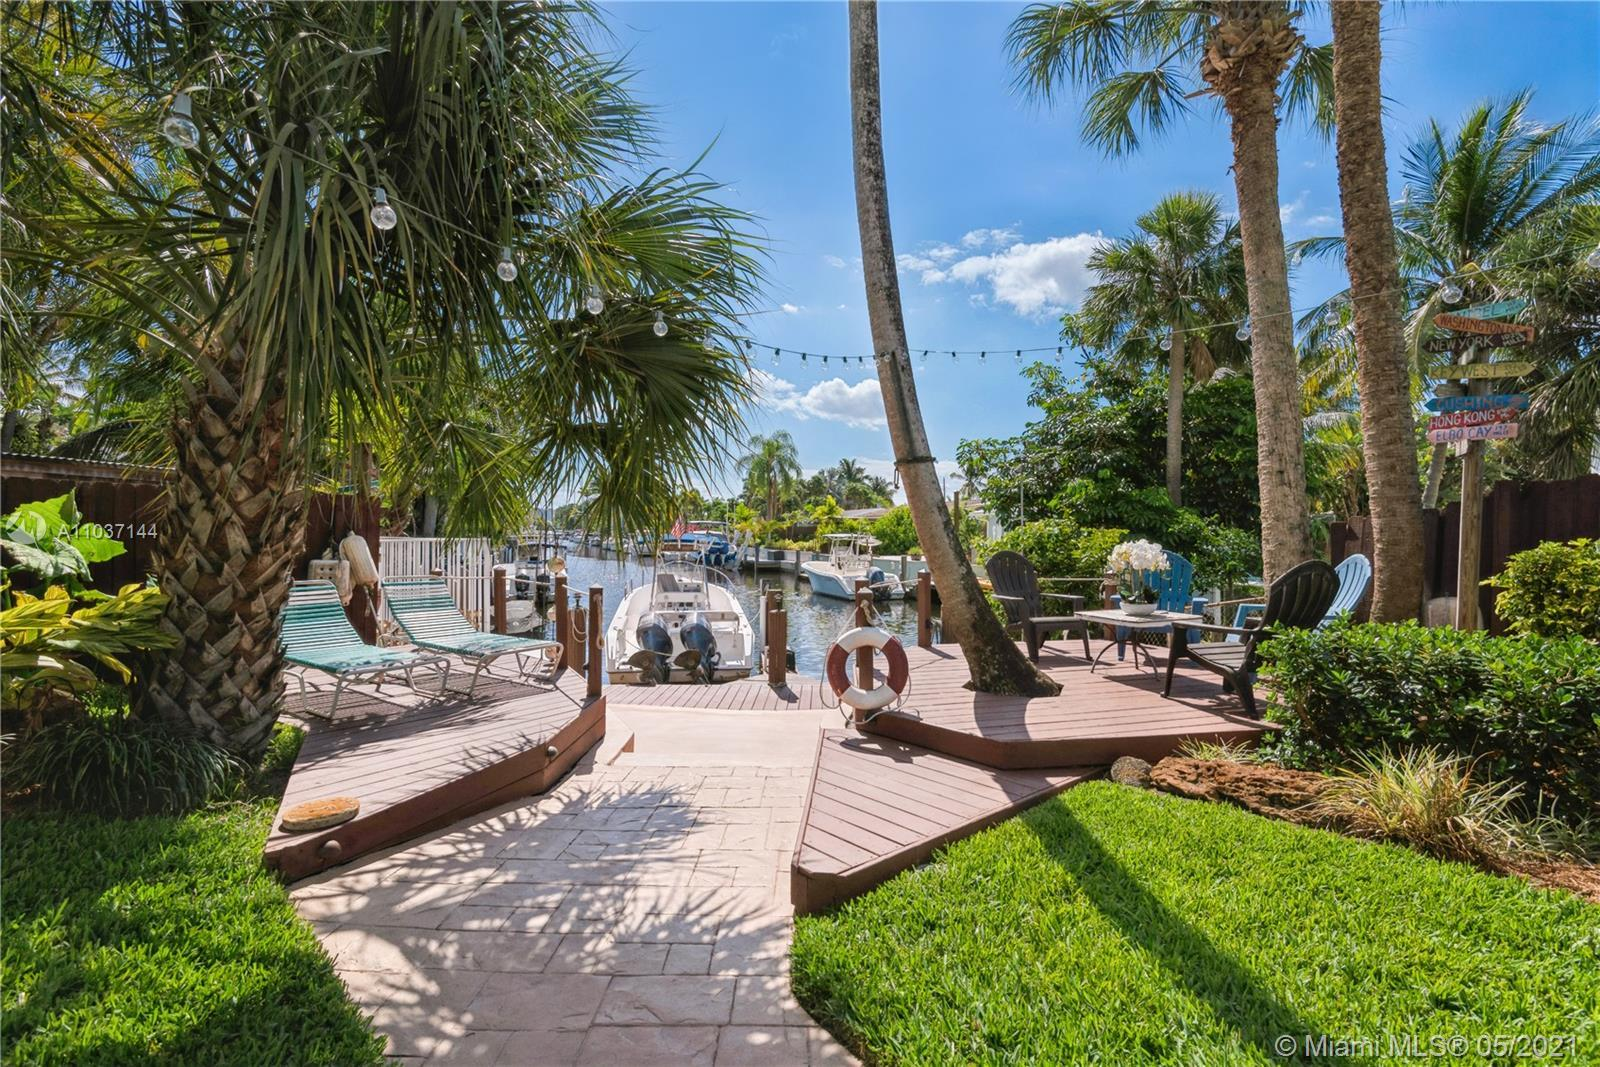 Boaters' paradise found here! Enjoy access to the Ocean in your backyard. 3-bedroom 2 bath home loca